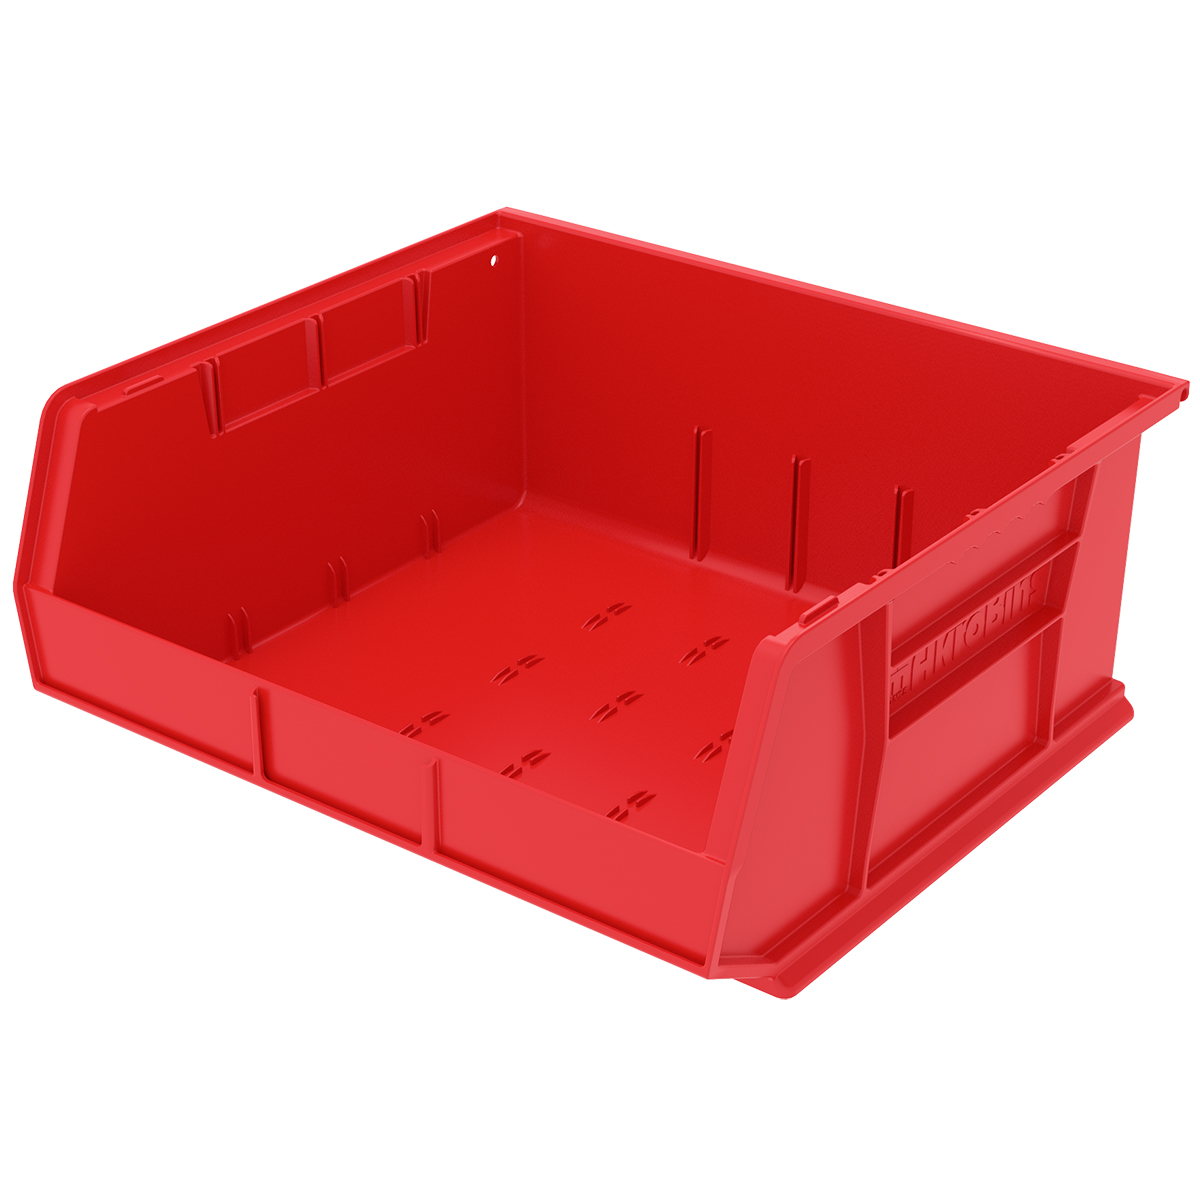 AkroBin 14-3/4 x 16-1/2 x 7, Red (30250RED).  This item sold in carton quantities of 6.